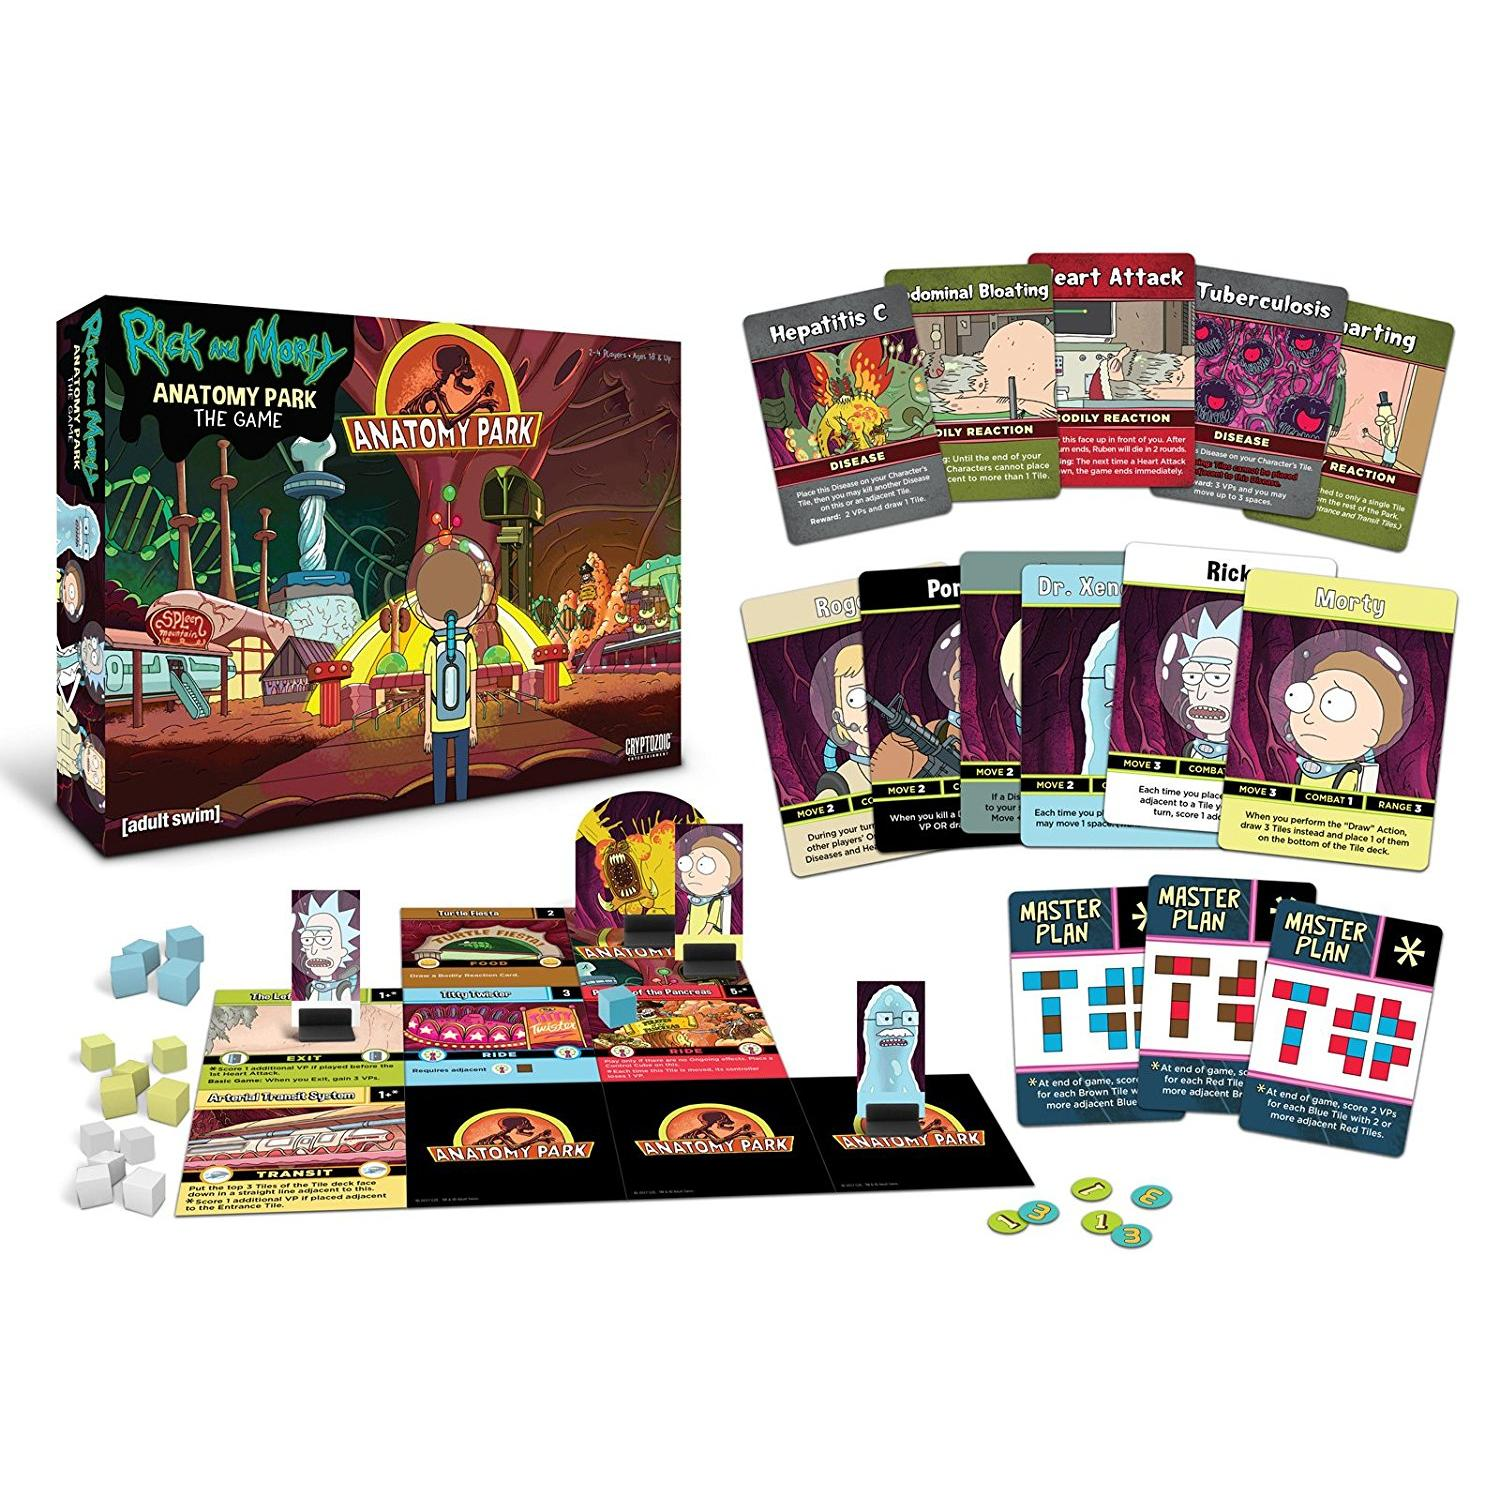 Rick And Morty Anatomy Park Game – Geeky Gift Ideas